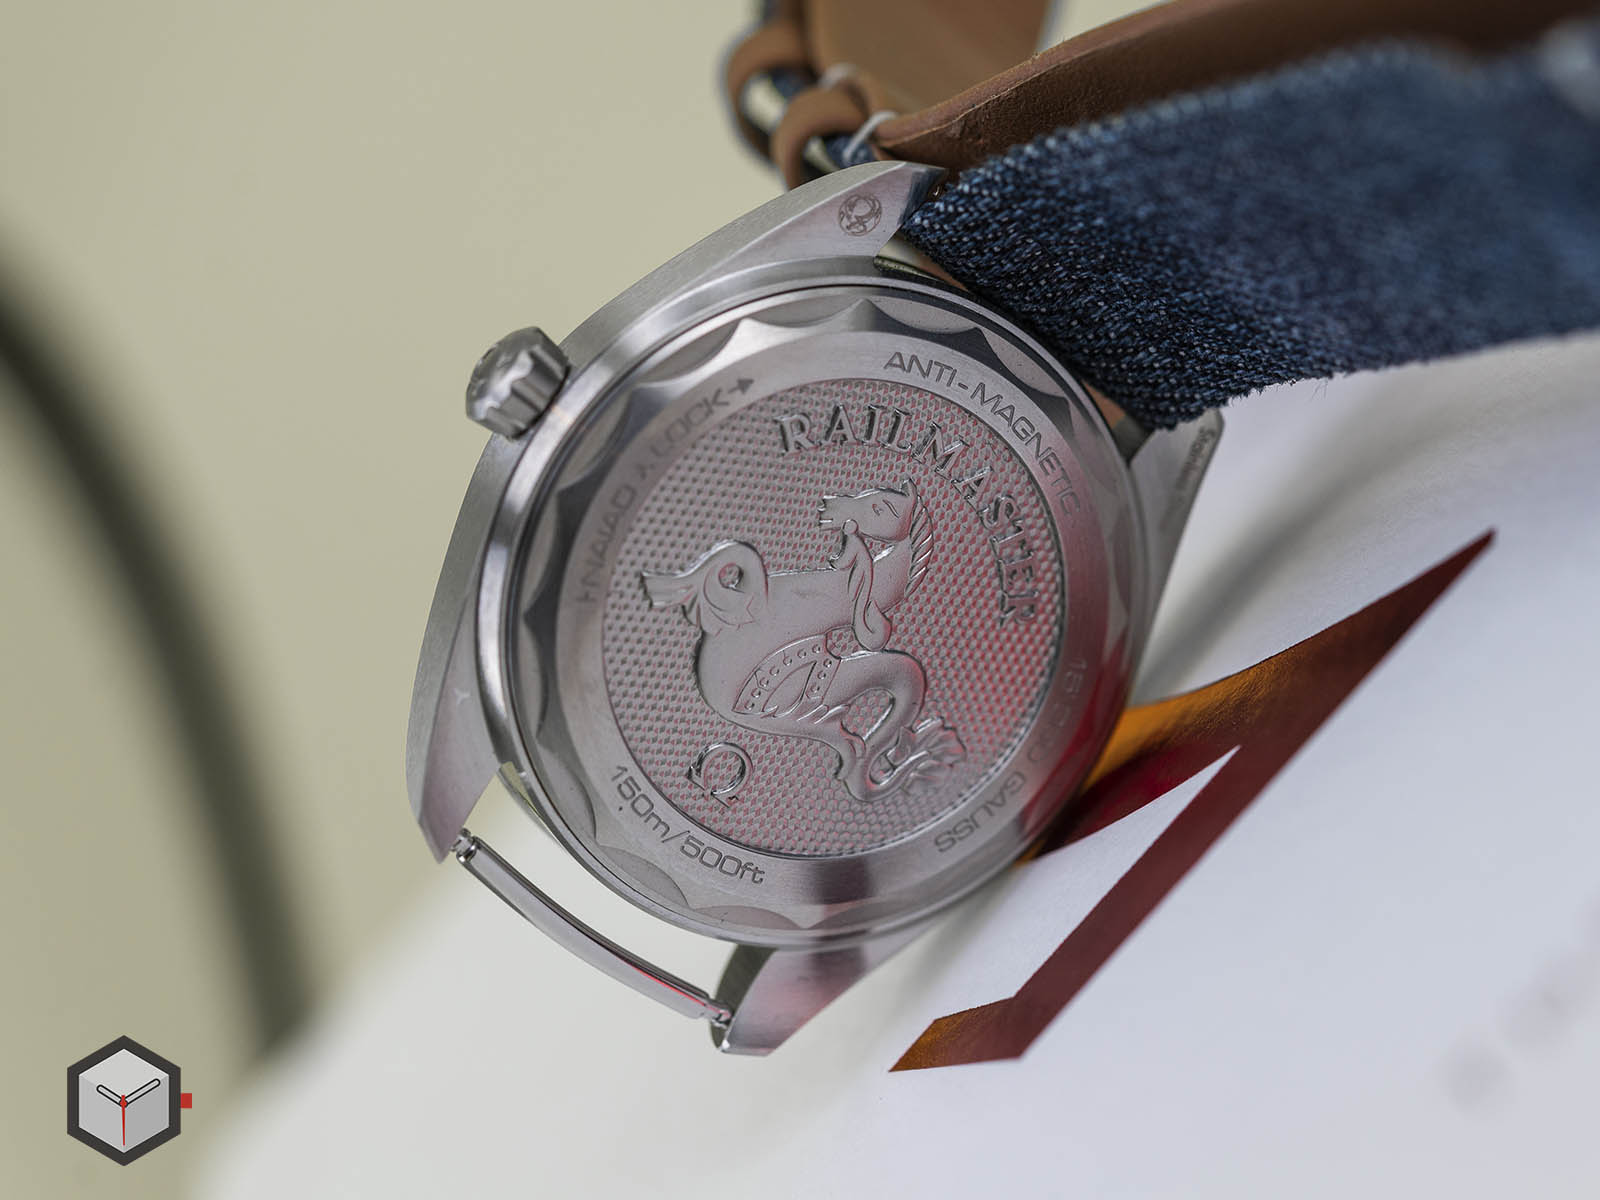 220-12-40-20-03-001-omega-railmaster-co-axial-master-chronometer-denim-7.jpg